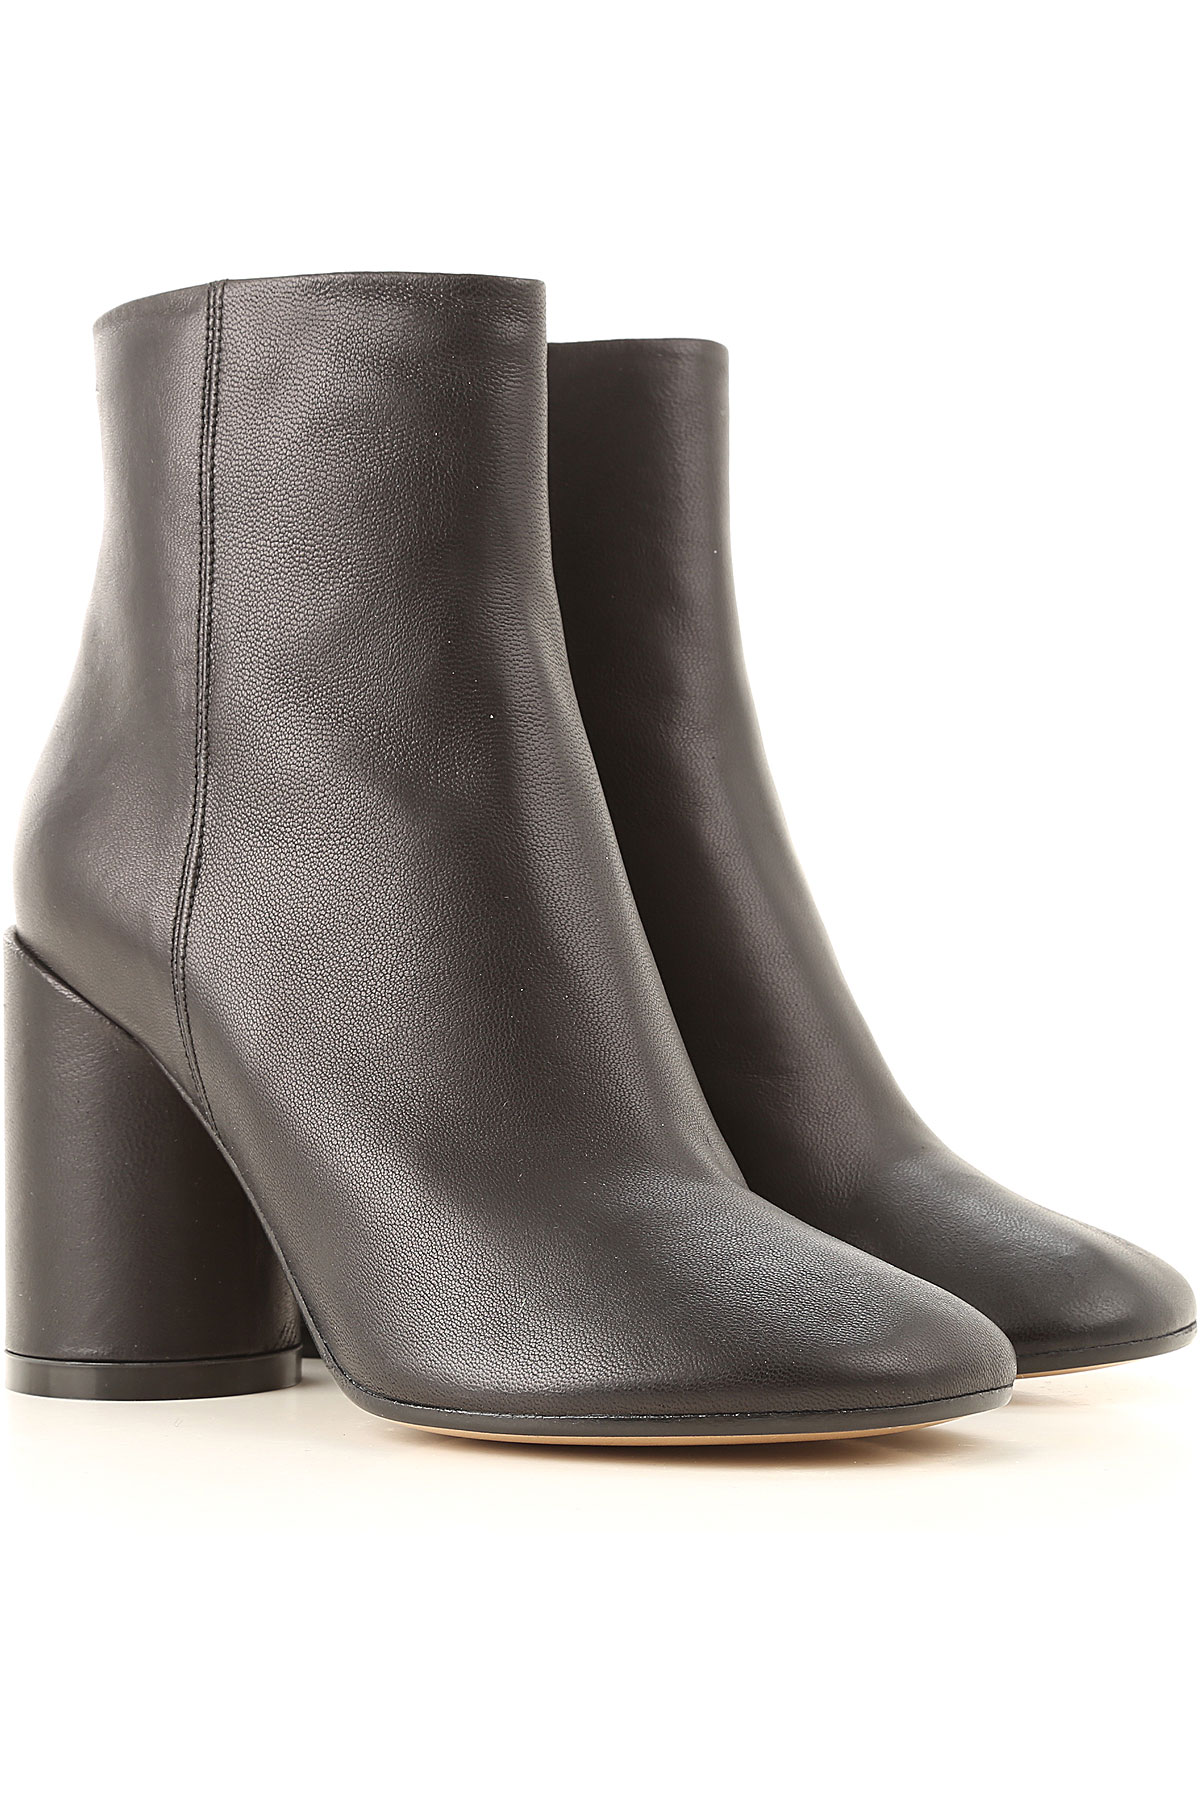 Maison Martin Margiela Boots for Women, Booties On Sale, Black, Leather, 2019, 10 6 7 8 9